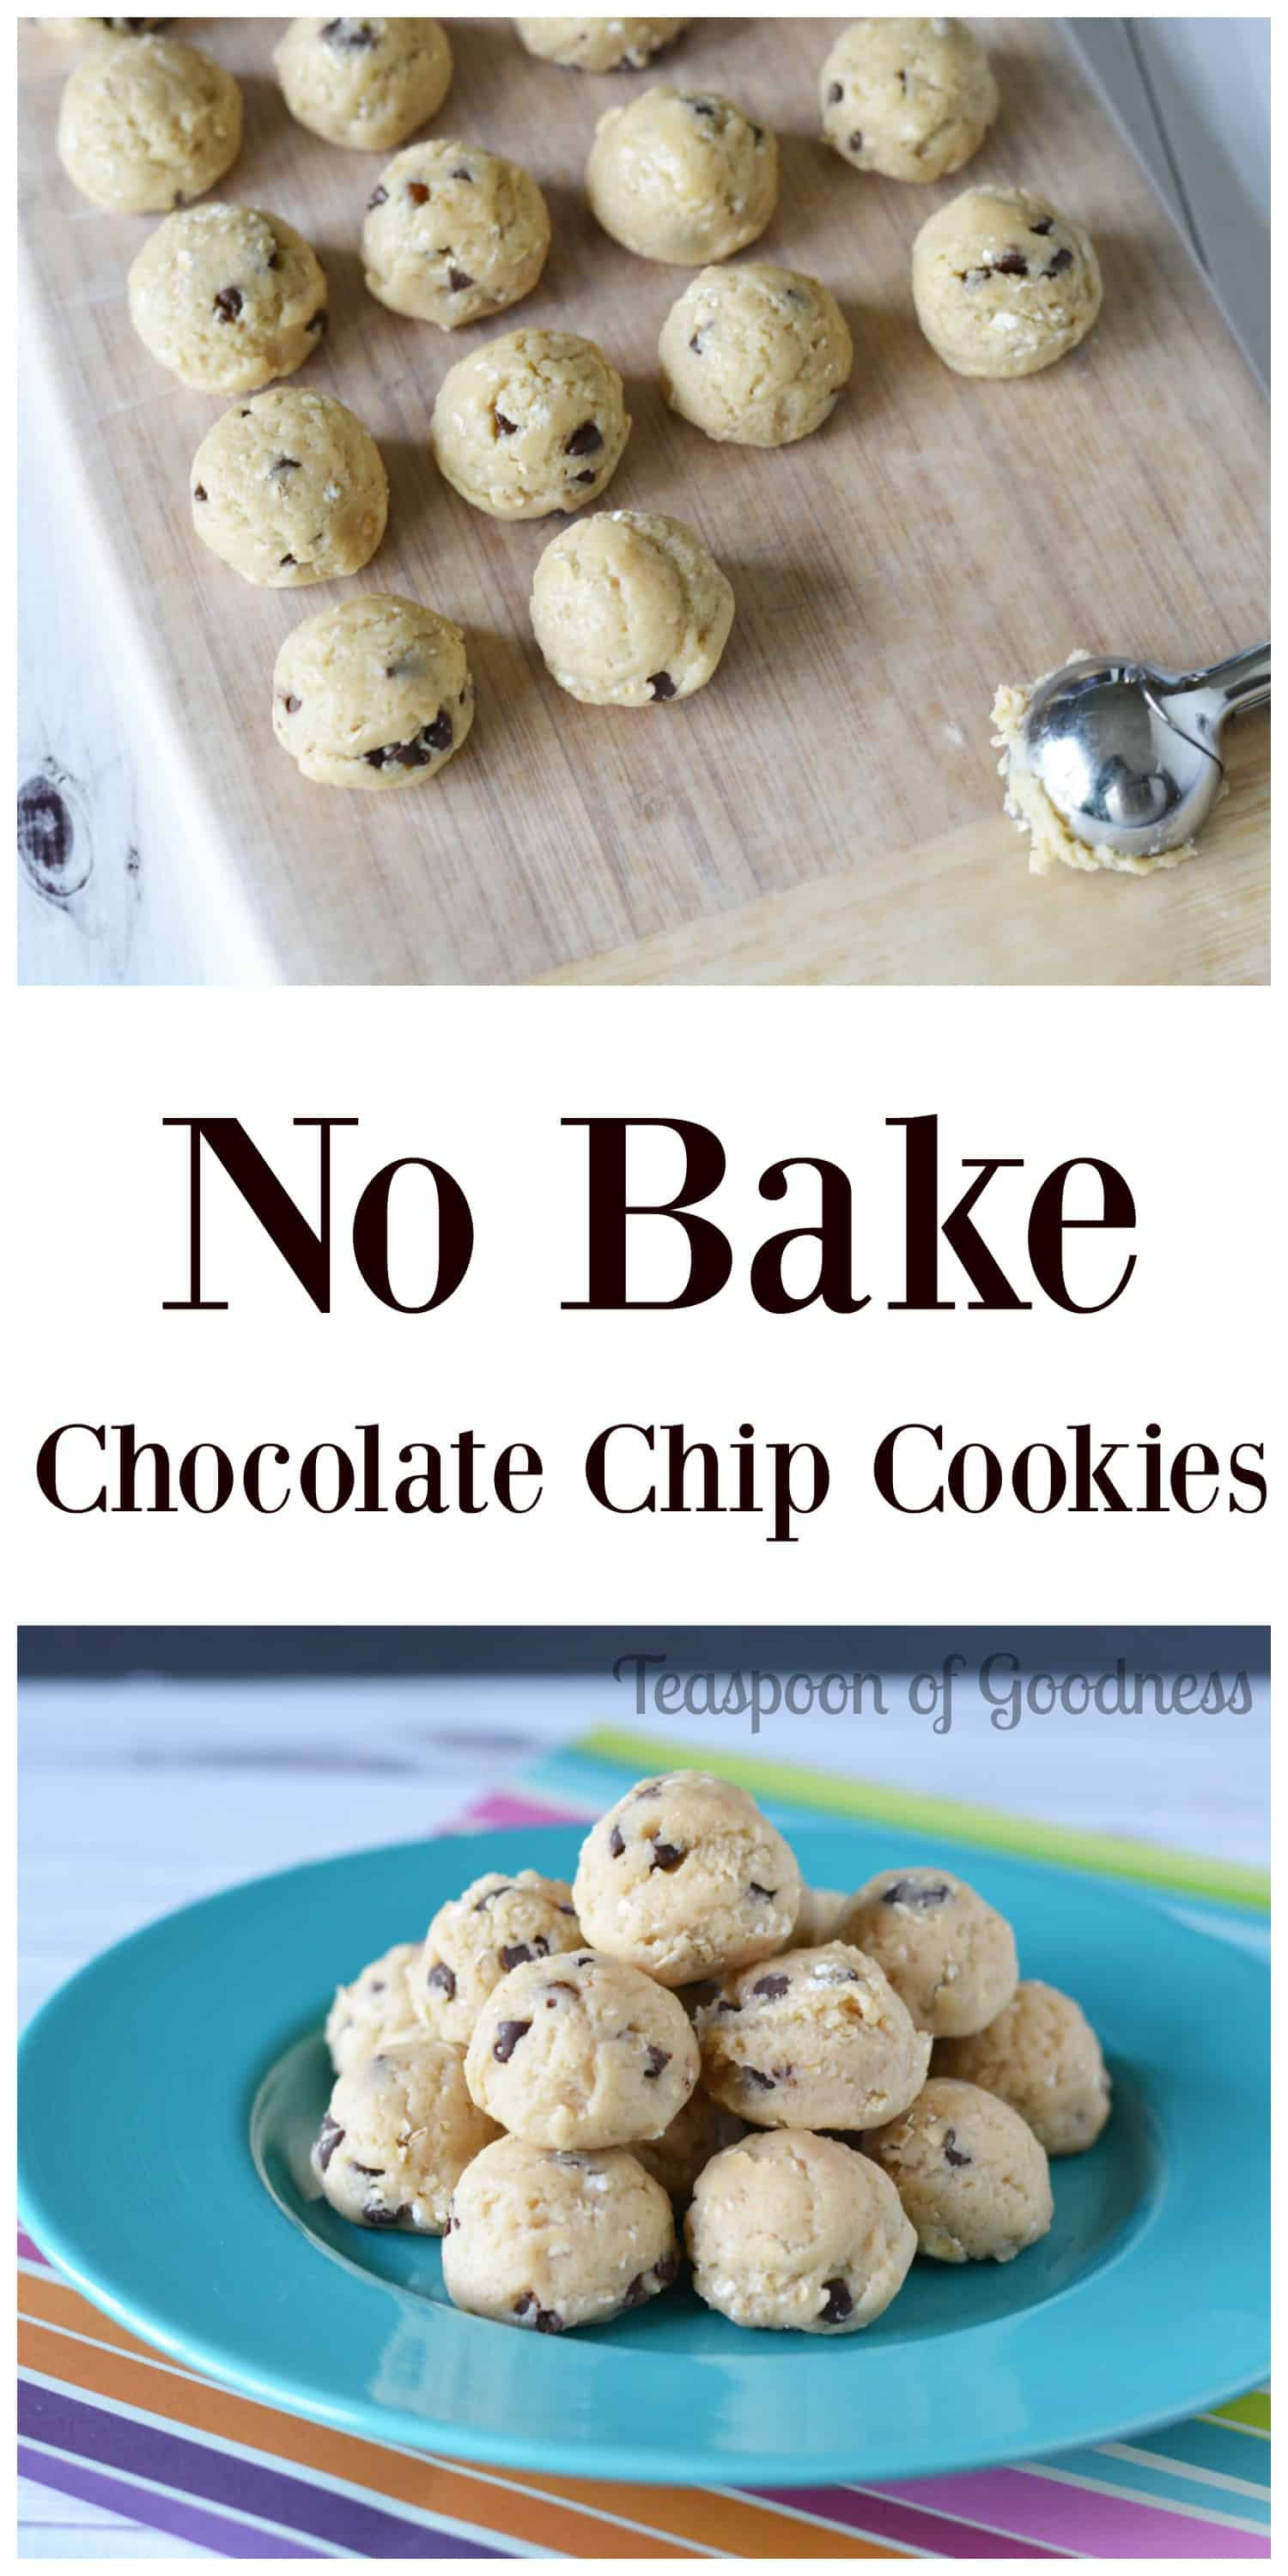 No Bake Chocolate Chip Cookies Ball Recipe - Teaspoon Of Goodness